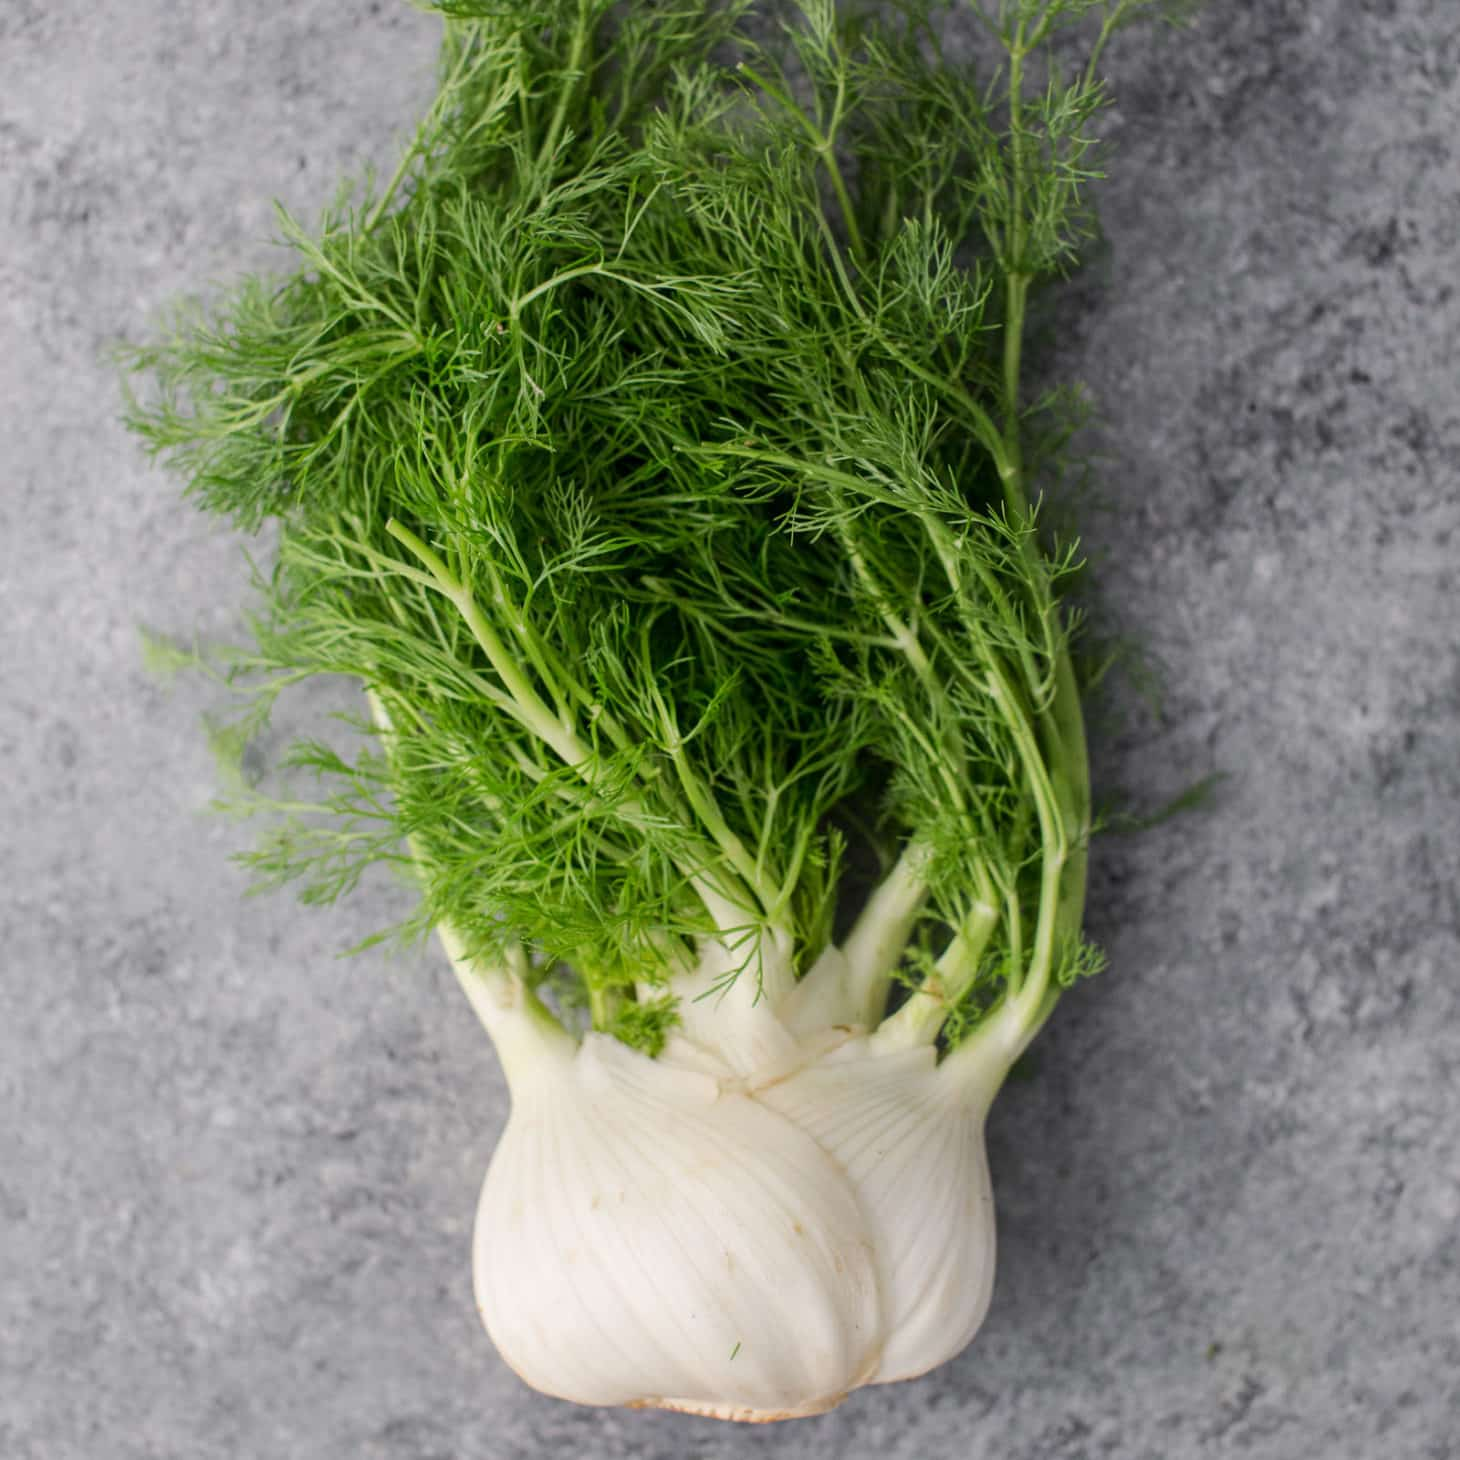 Fennel Recipes Storage And Cooking Tips Naturally Ella